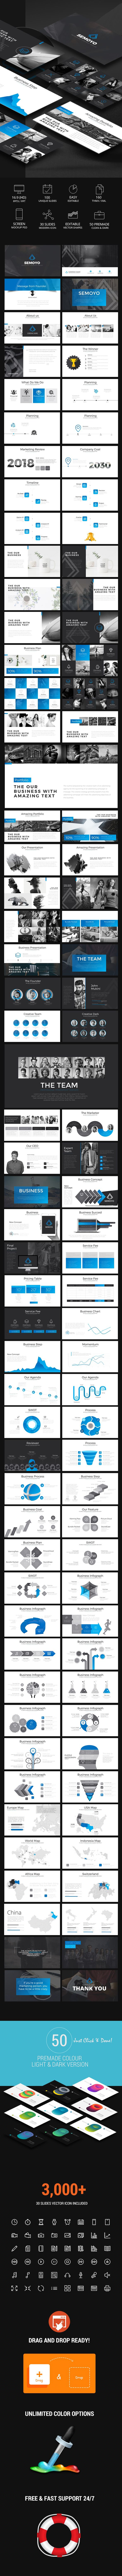 Semoyo PowerPoint. Download: https://graphicriver.net/item/semoyo-powerpoint/19746459?ref=thanhdesign